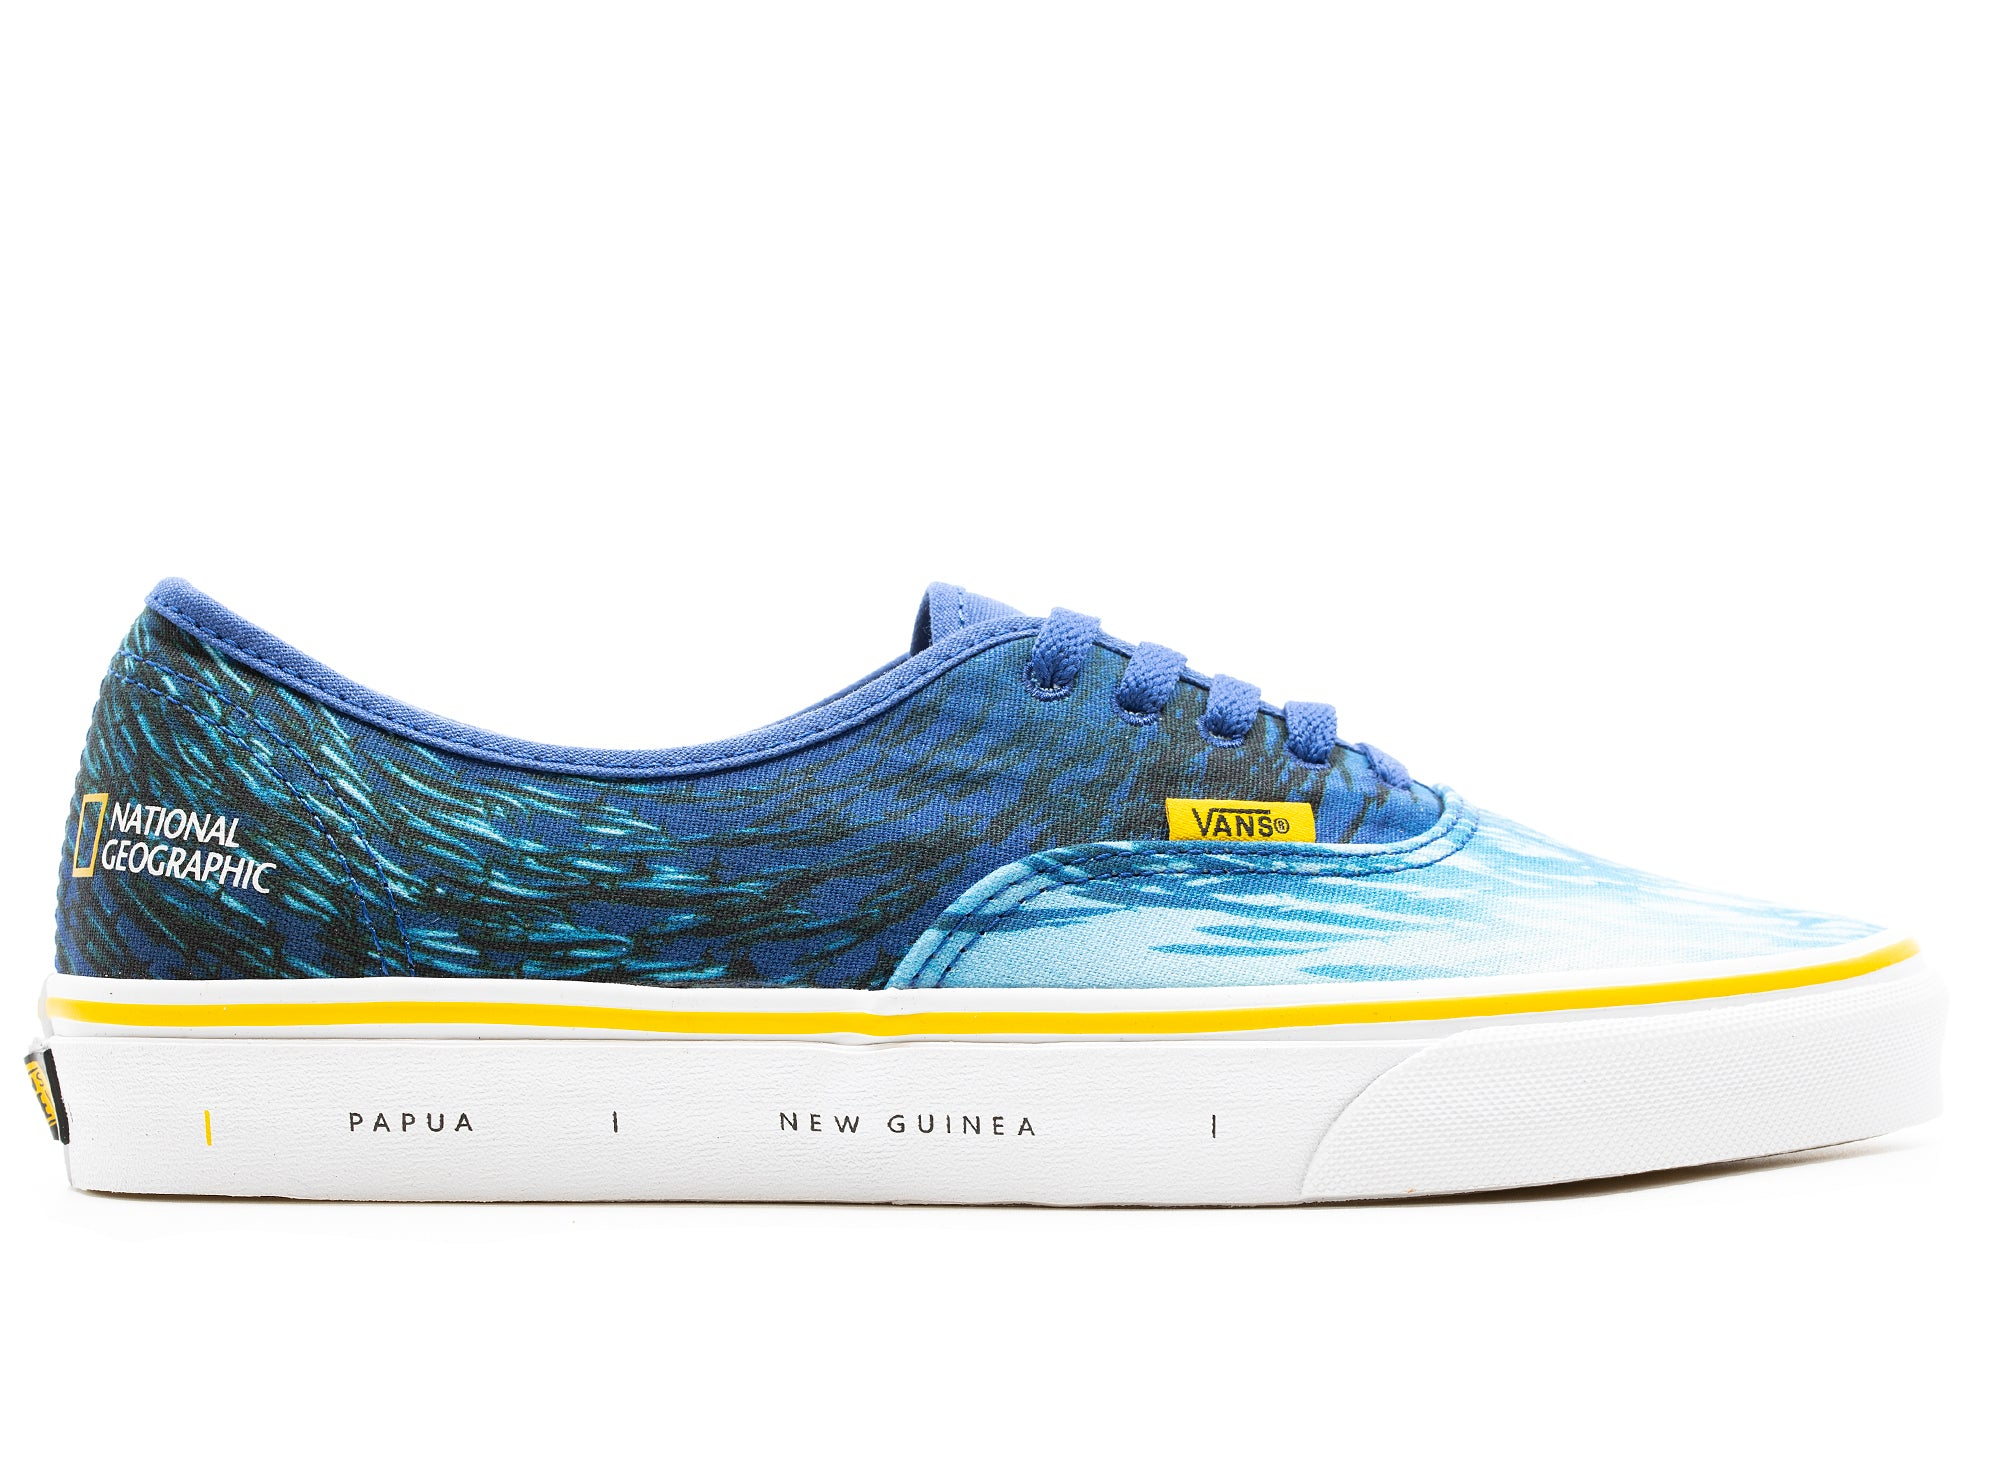 Vans Authentic 'National Geographic' xld